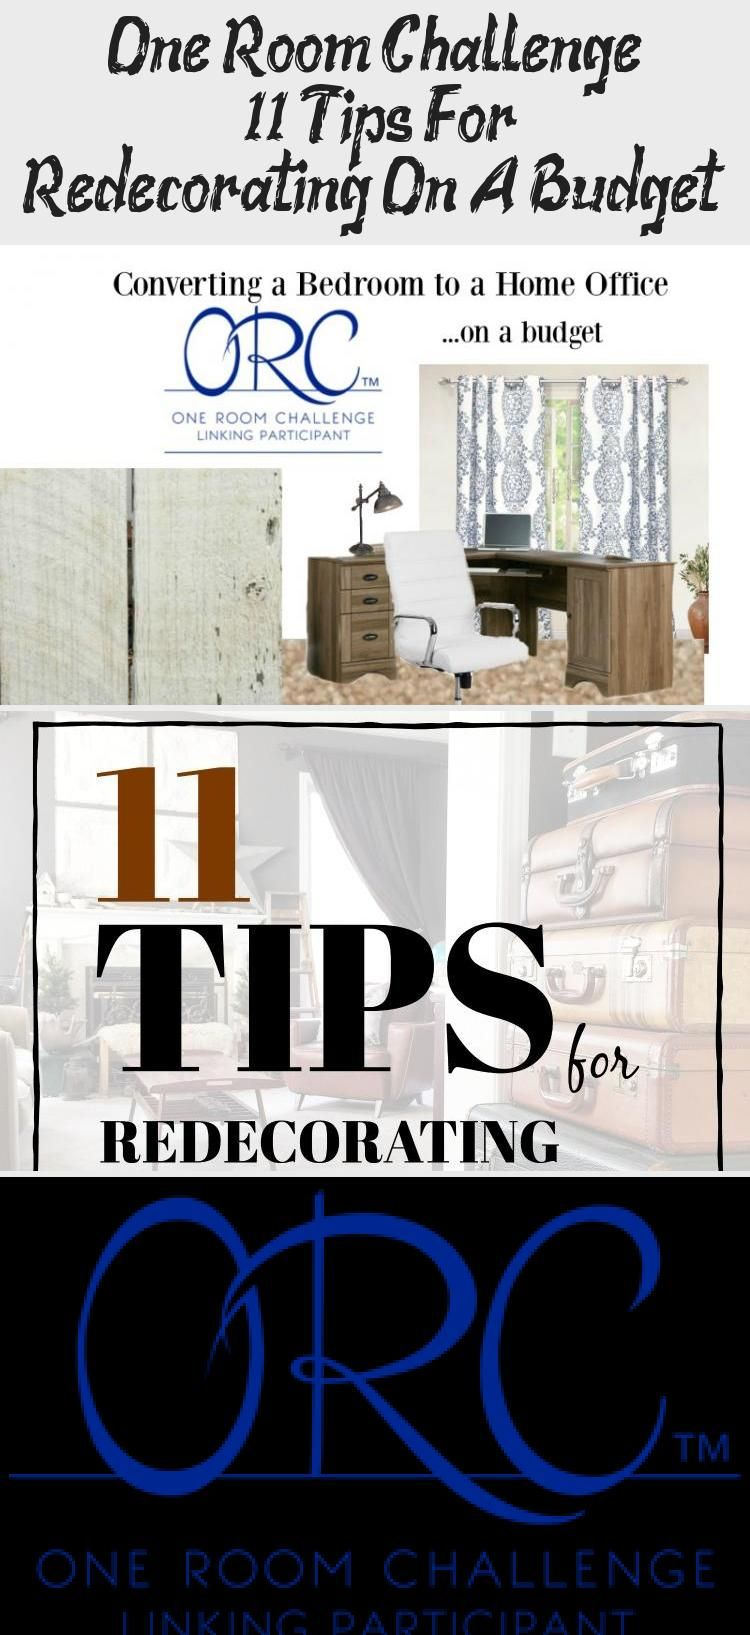 How to redecorate on a budget.  Here are some tips.  Find more on salvagesisterandmister.com #HomeDecorDIYVideosOnABudget #HomeDecorDIYVideosBedroom #HomeDecorDIYVideosApartment #HomeDecorDIYVideosIdeas #HomeDecorDIYVideosCheap